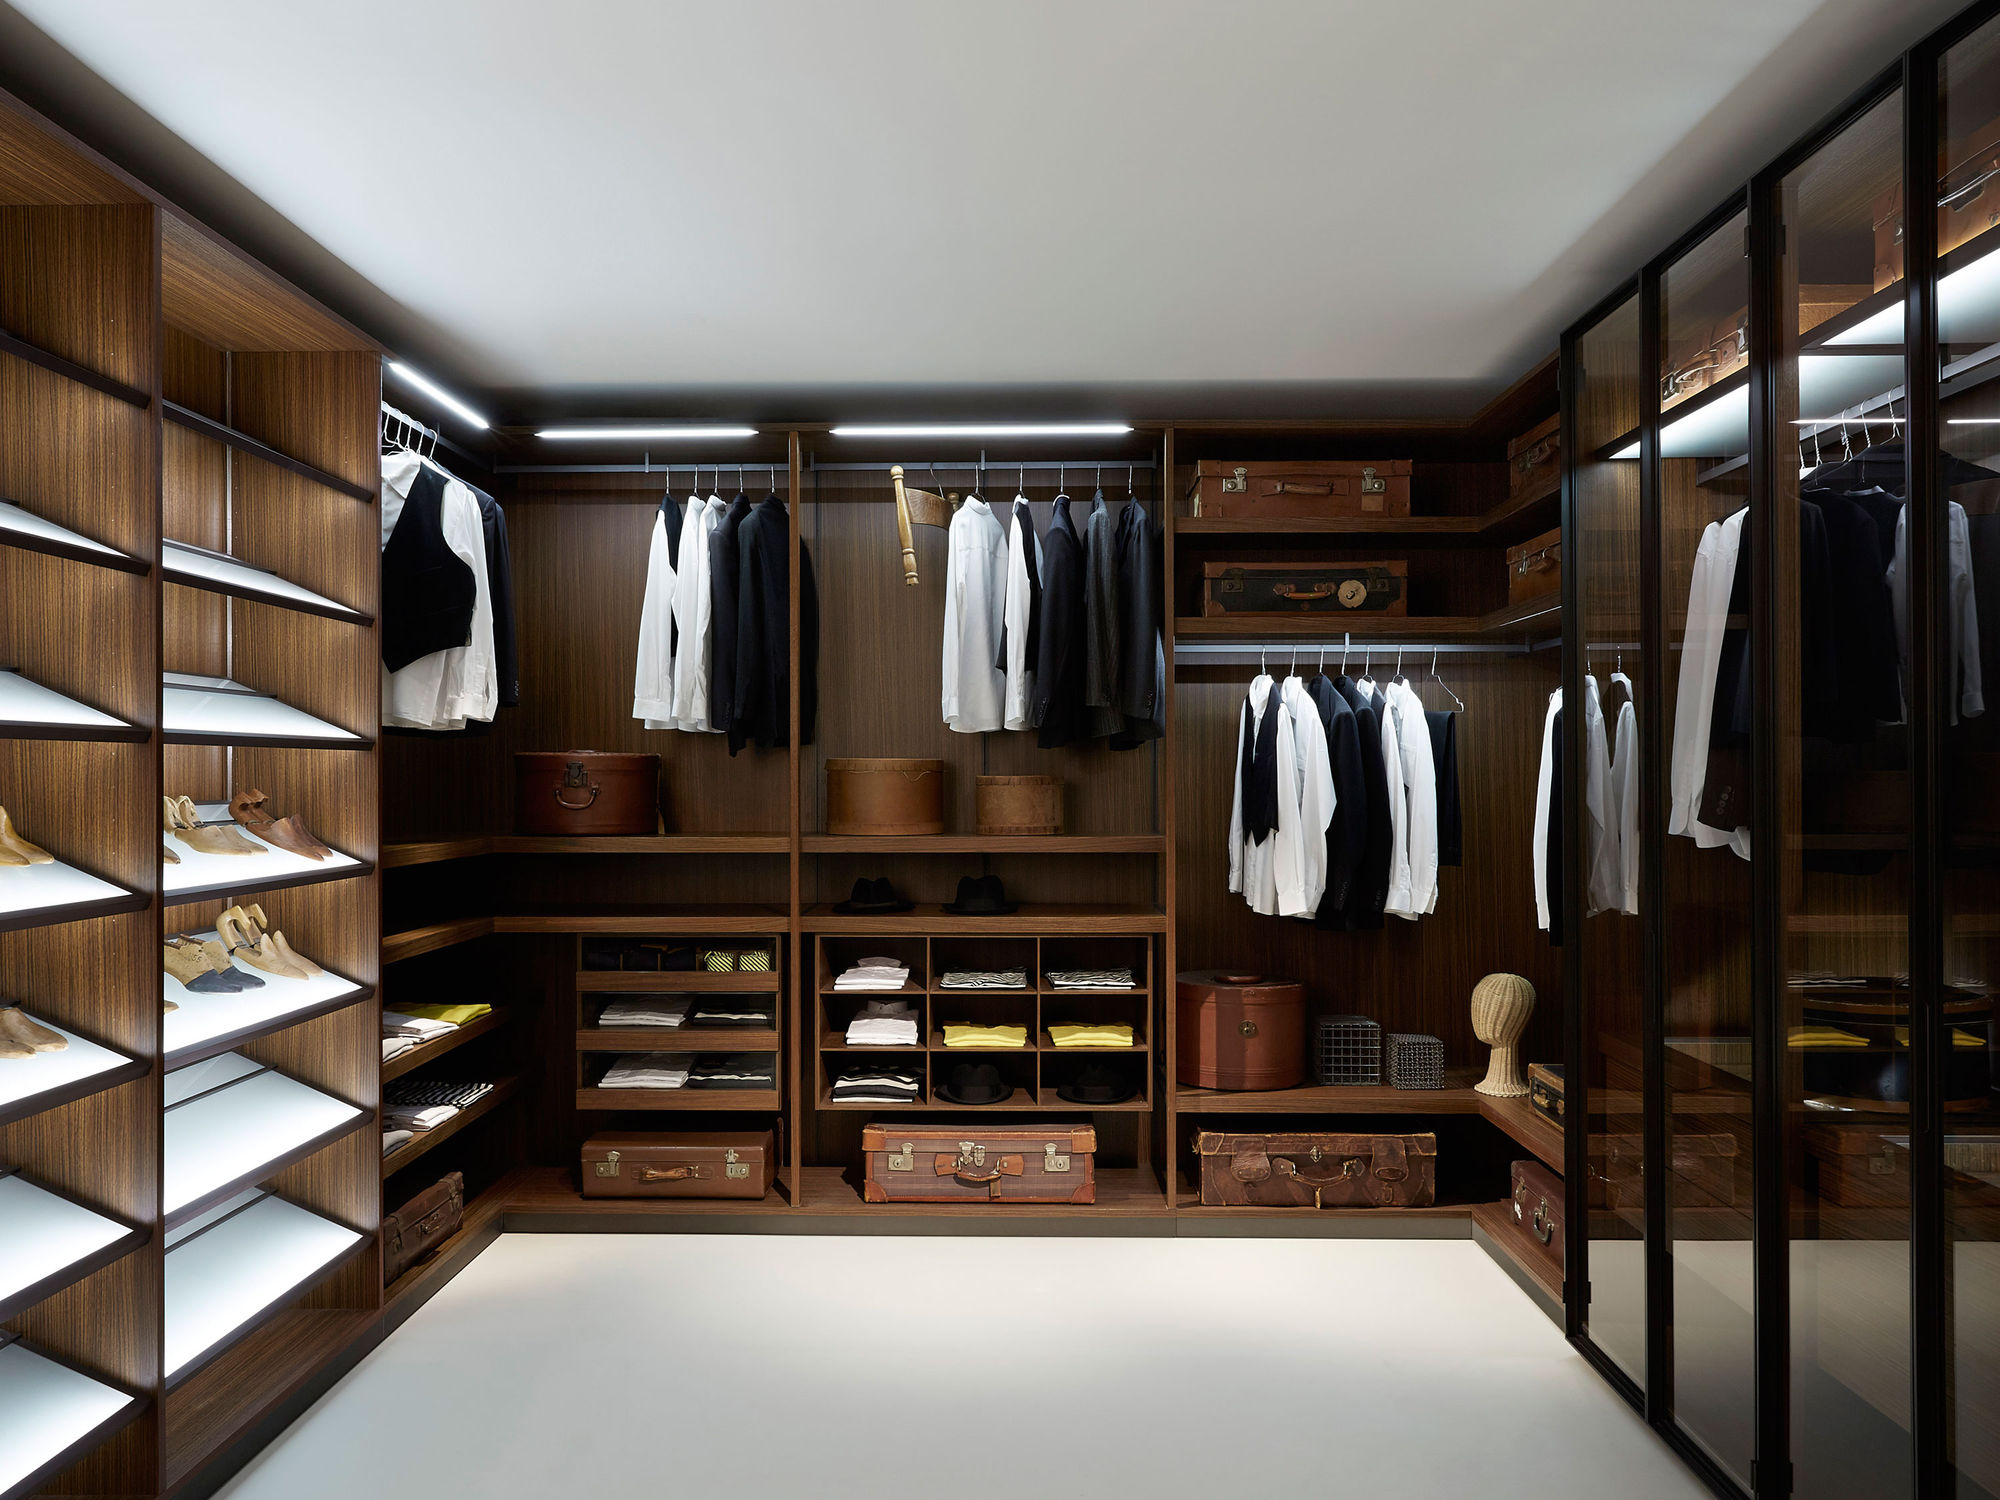 trends by home have extras for denver hers closet lighting in must built his and we direct spaces pin gorgeous design include transparent recently this lights draper closets